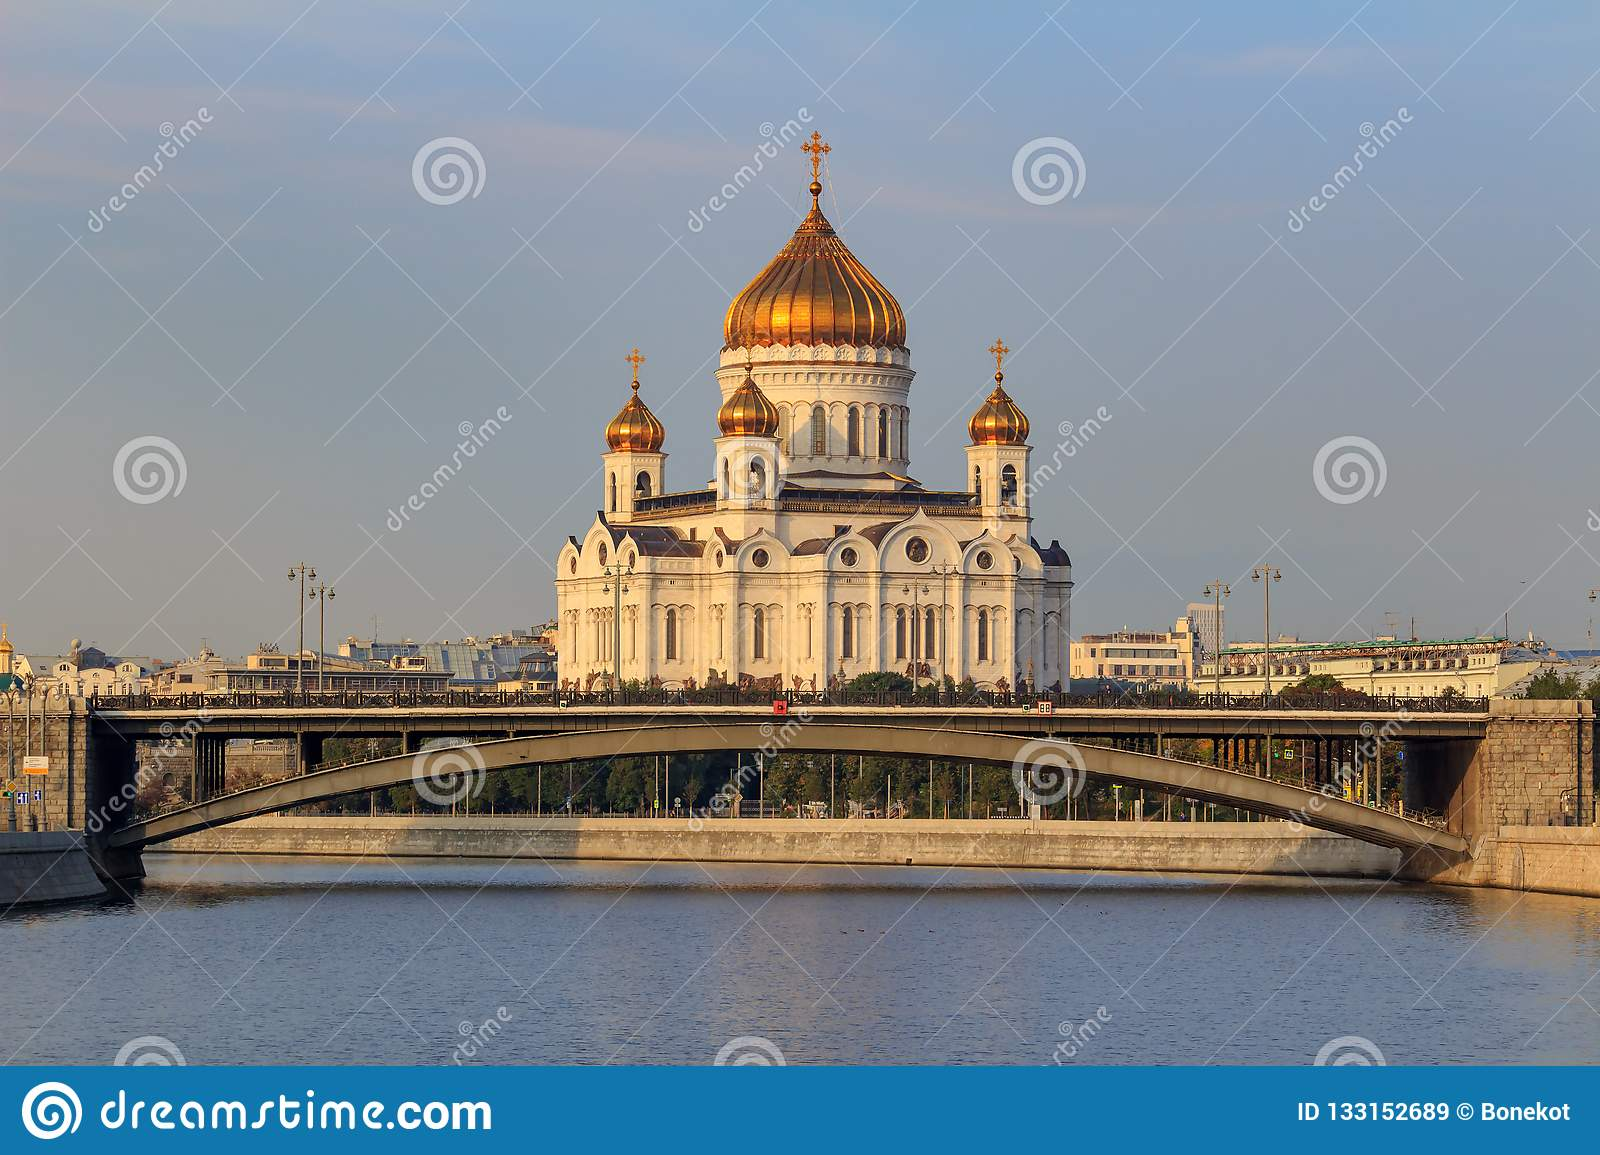 Moscow, Russia - September 02, 2018: Cathedral of Christ the Saviour in Moscow against Moskva river and Bolshoy Kamennyi Bridge in